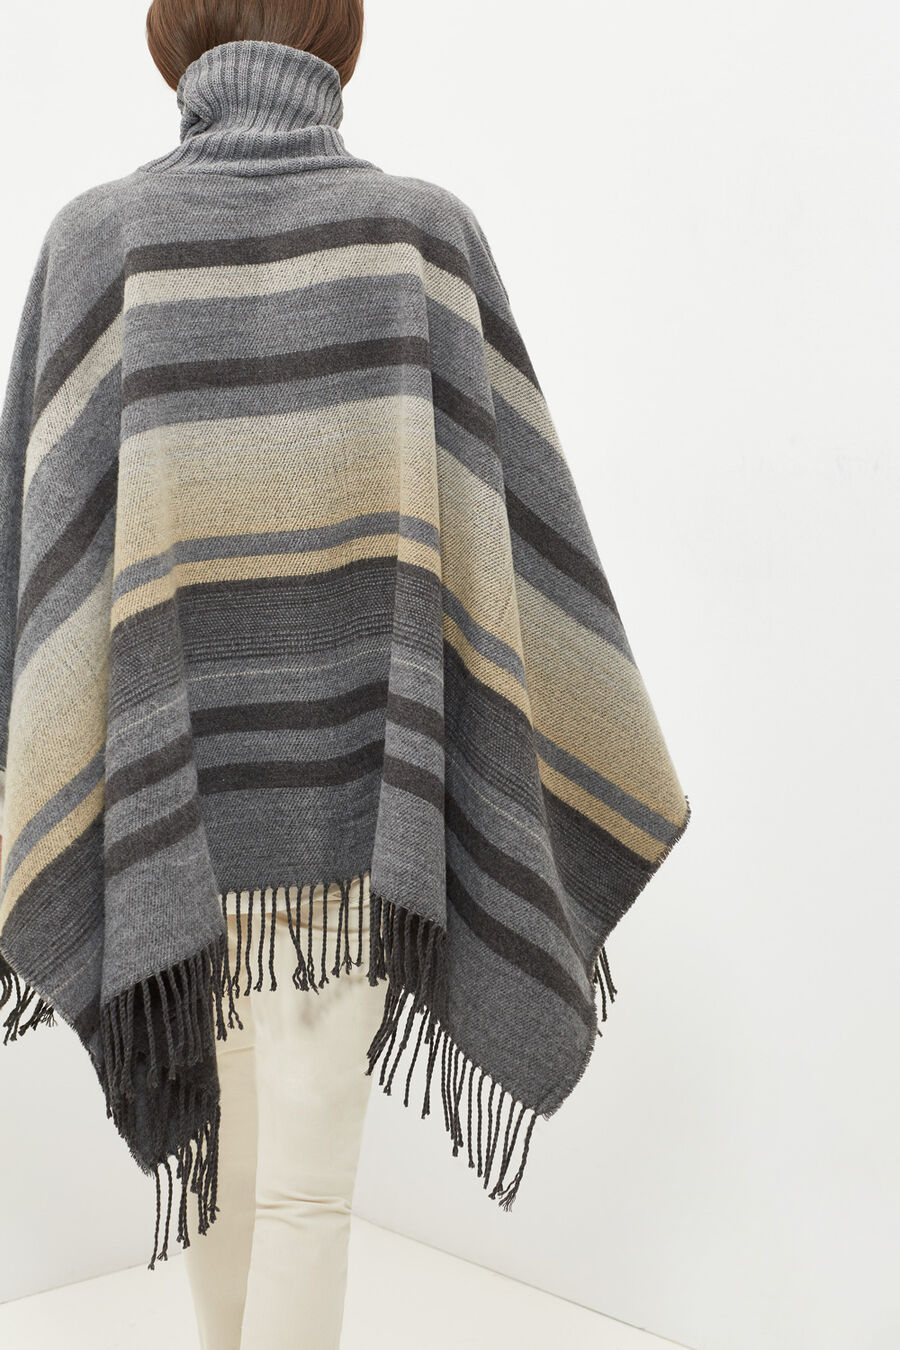 Poncho-style scarf